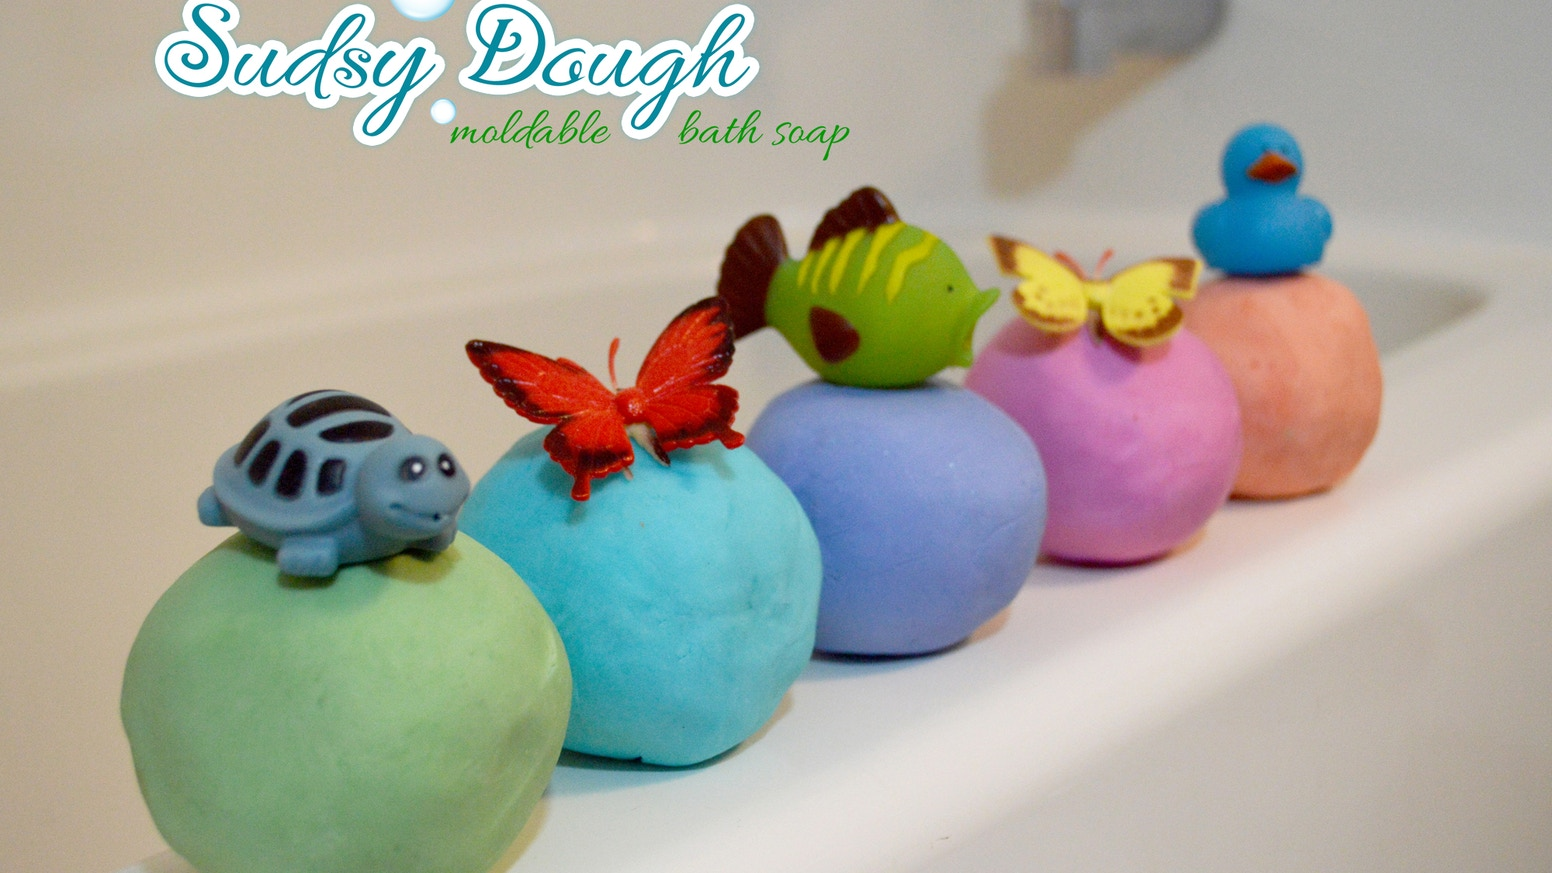 Sudsy Dough moldable soap doubles as an interactive scented bath activity and a cleansing soap! Handmade in the US!